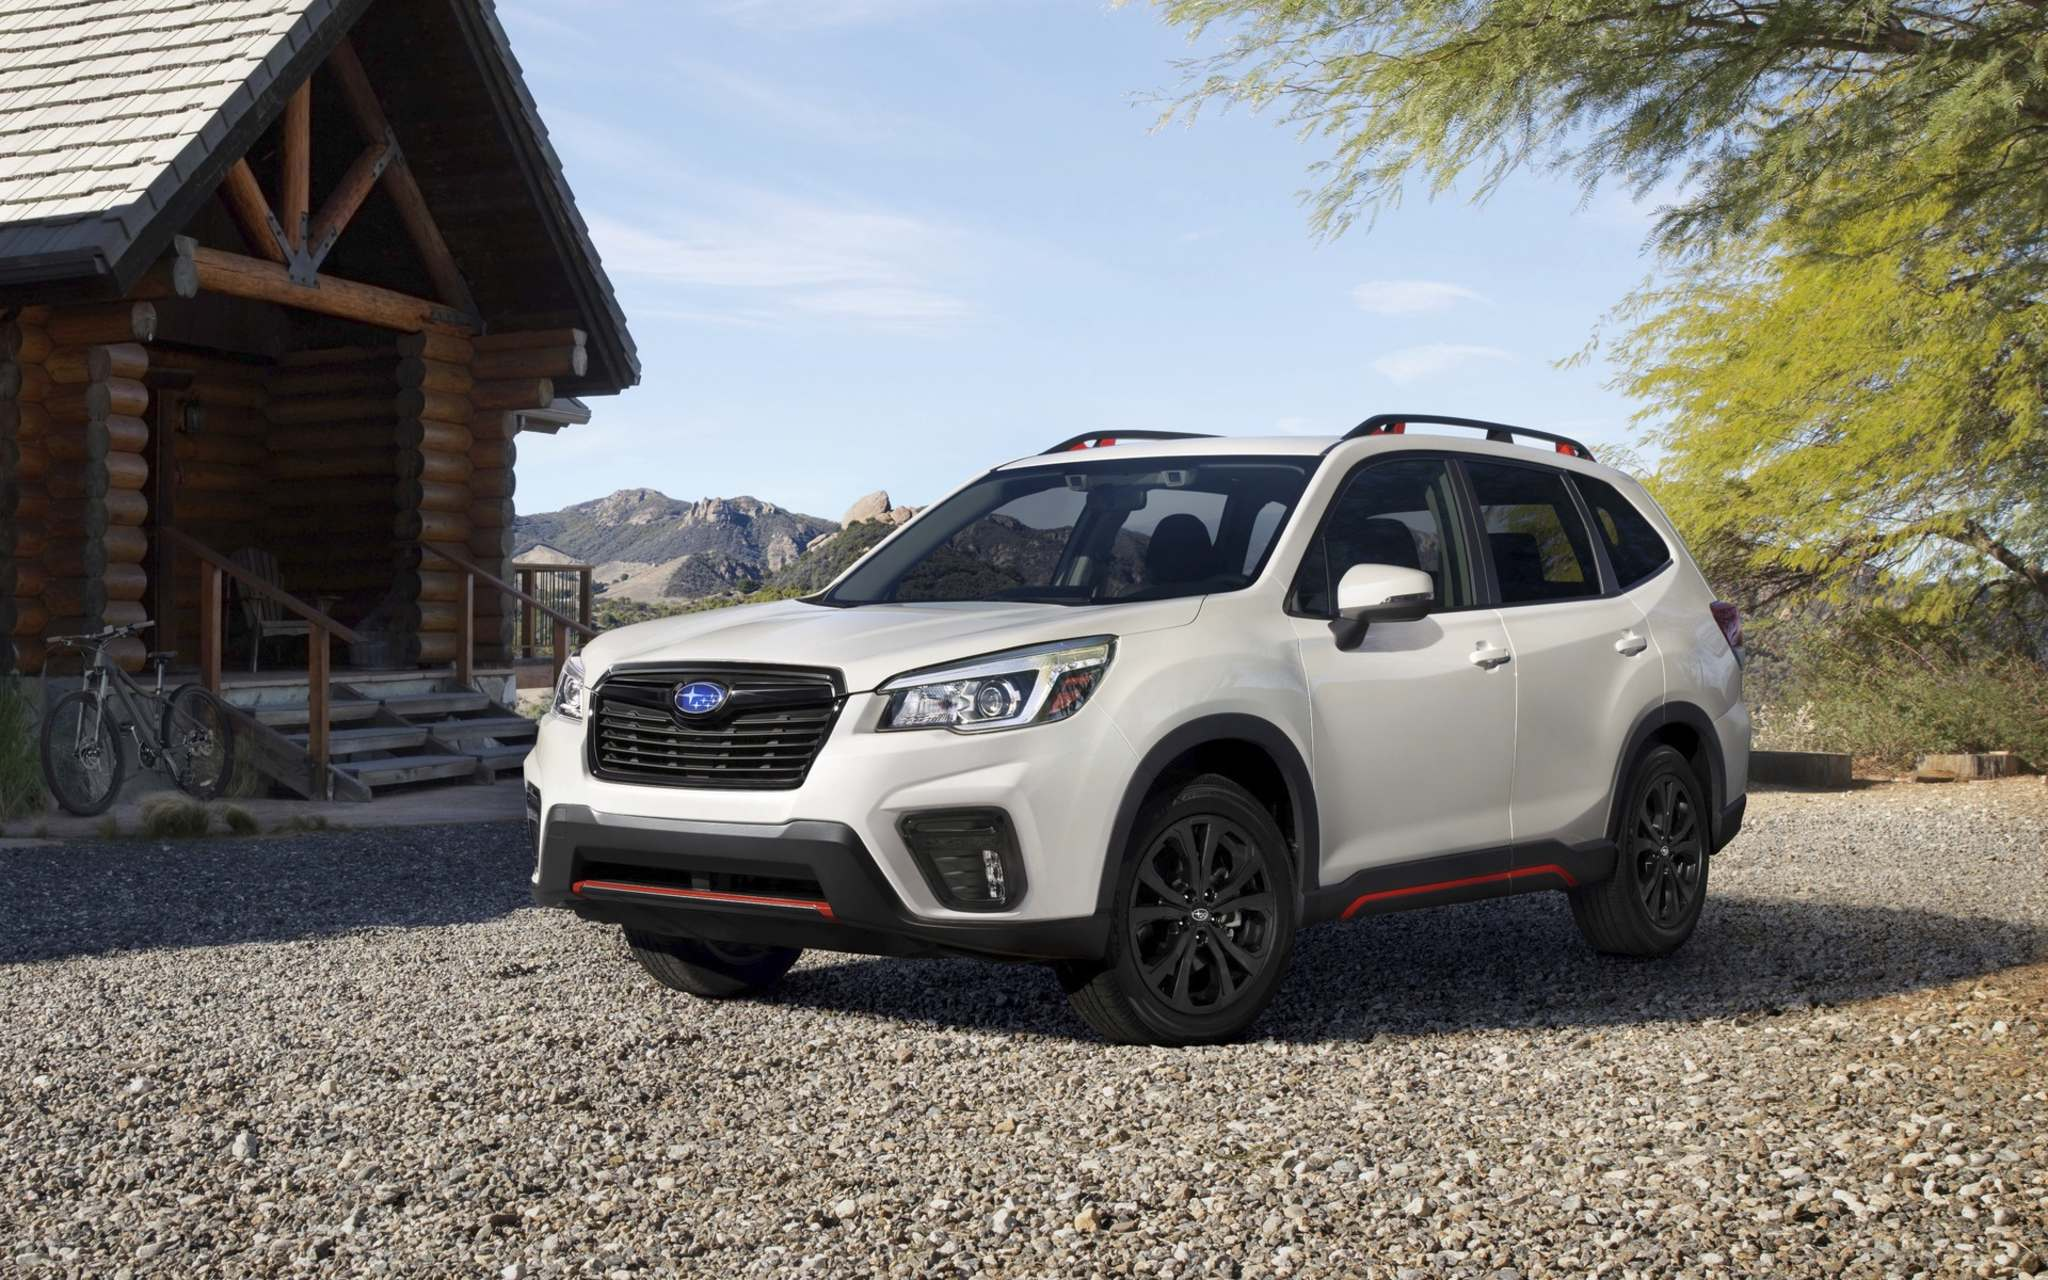 SubaruThe 2019 model of the Subaru Forester is built on the Subaru Global Platform, which underpins the Impreza and Crosstrek.